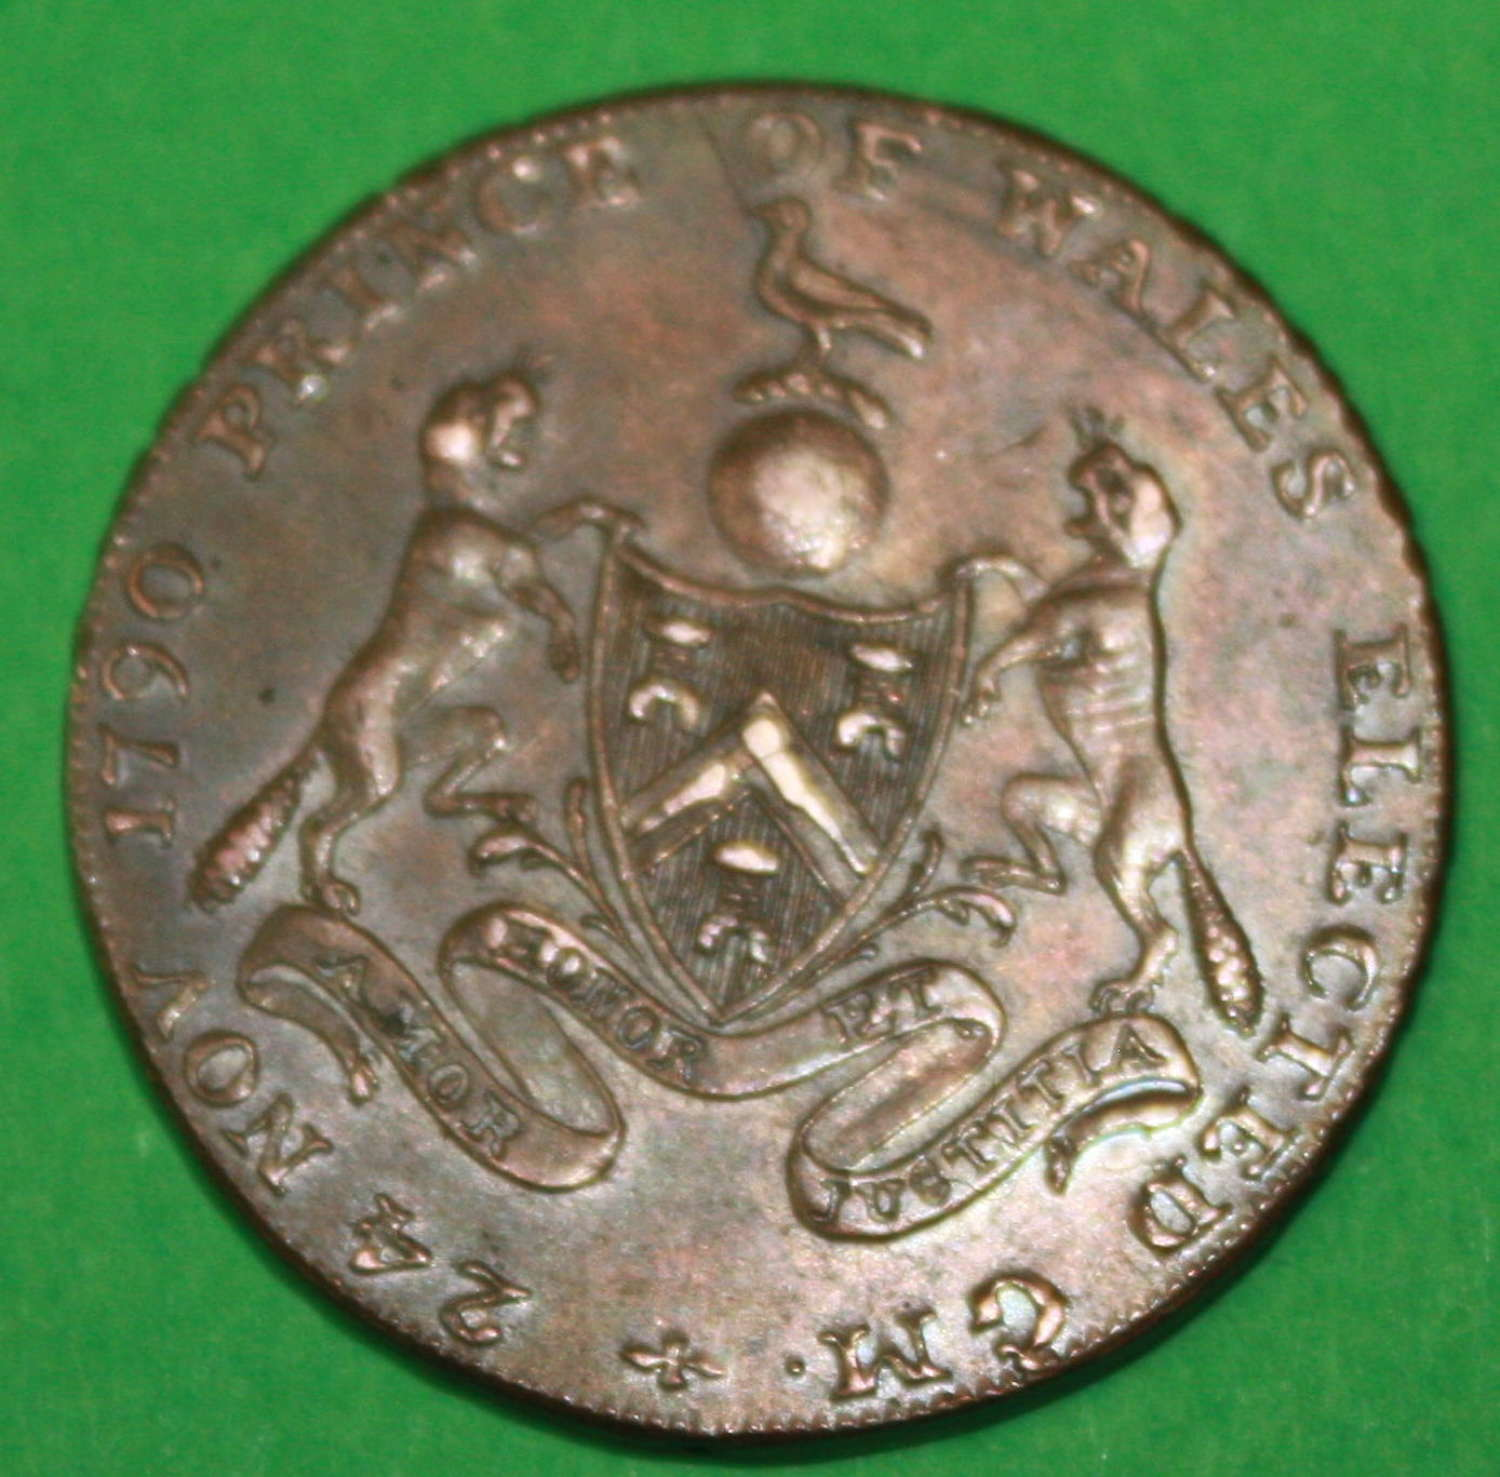 A MASONIC 1790 PRICE OF WALES ELECTED TOKEN